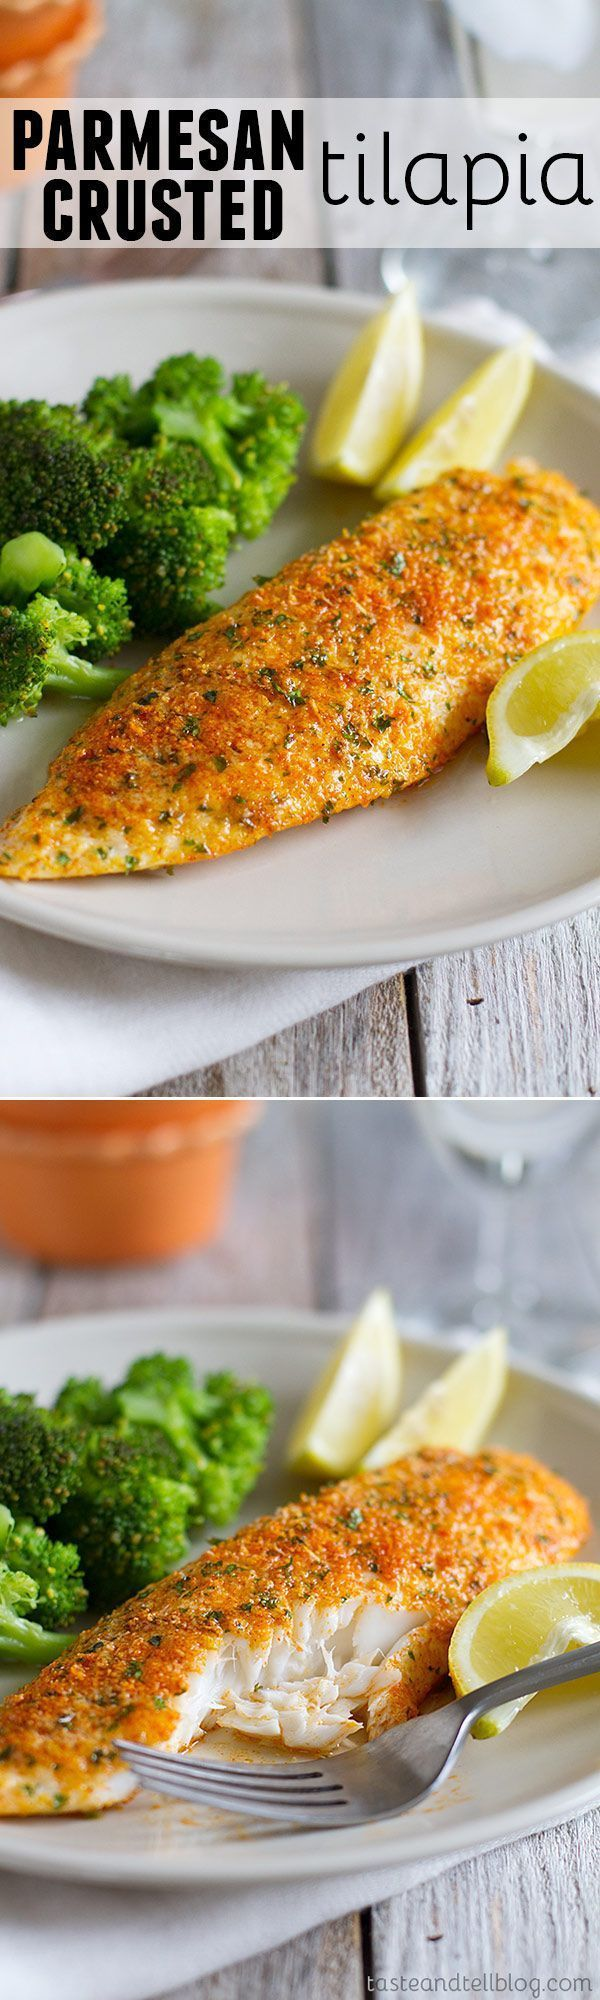 This Parmesan Crusted Tilapia is a simple fish technique that is done in 20 minutes and will even impress non-fish lovers!